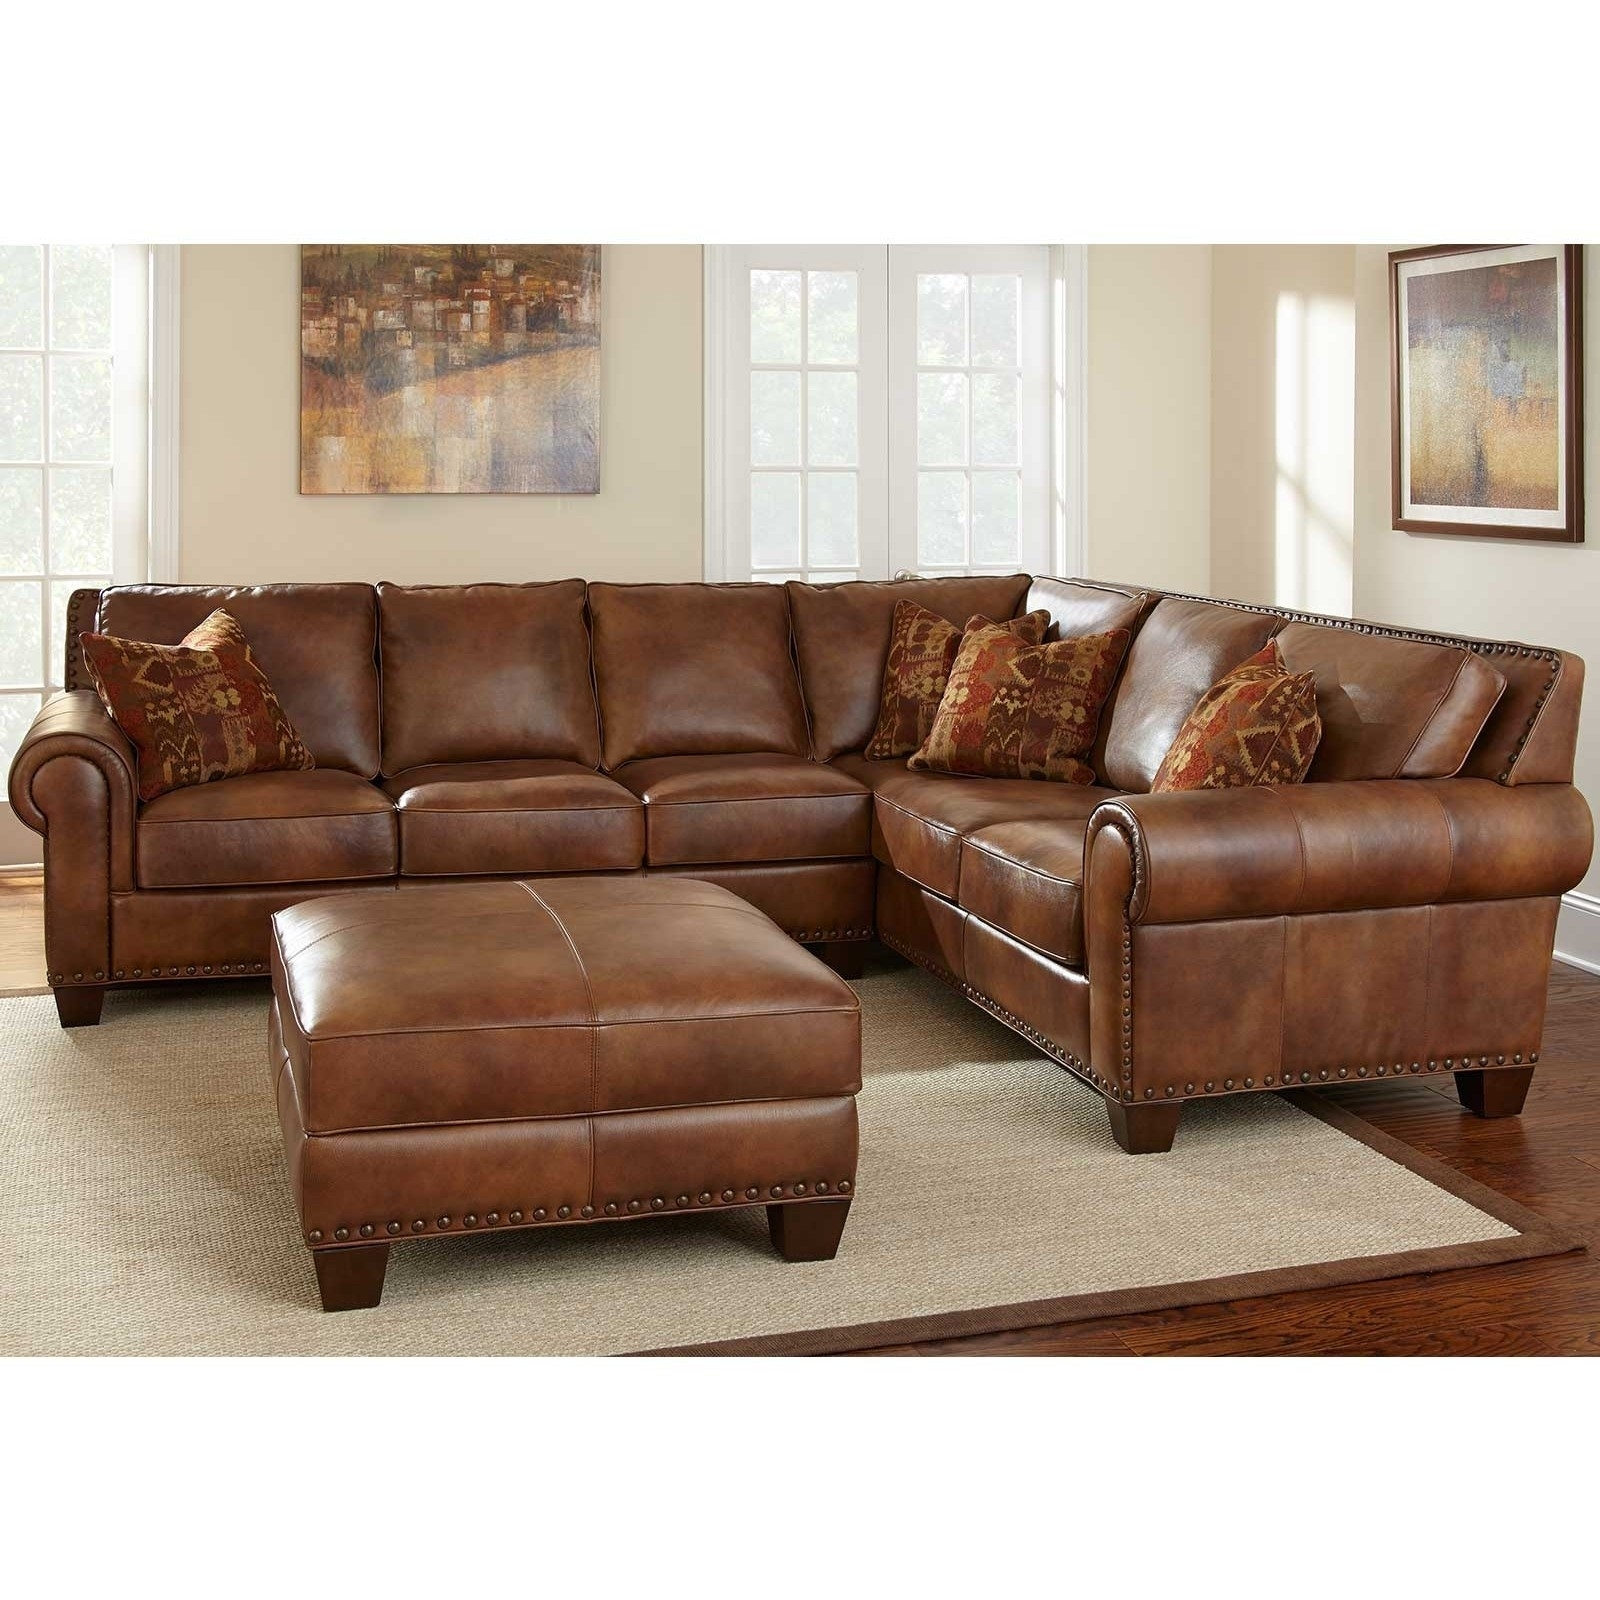 Sectional Sofa Design: High End Leather Sectional Sofas For Sale Intended For On Sale Sectional Sofas (Image 8 of 10)